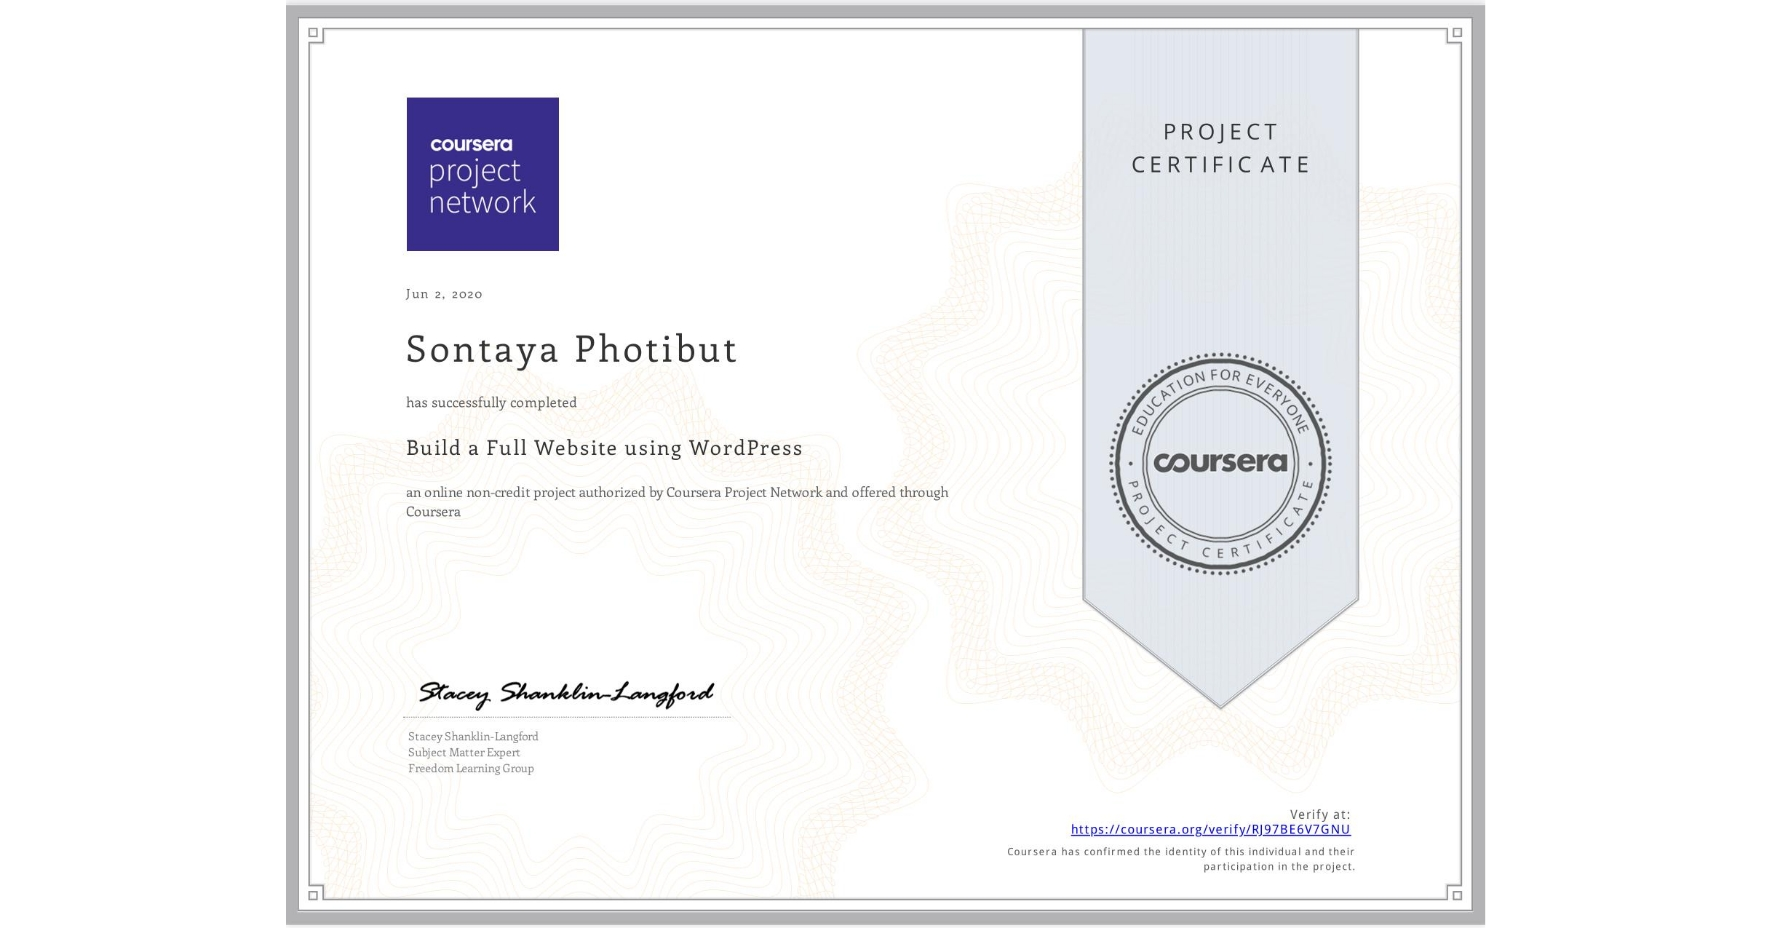 View certificate for Sontaya Photibut, Build a Full Website using WordPress, an online non-credit course authorized by Coursera Project Network and offered through Coursera